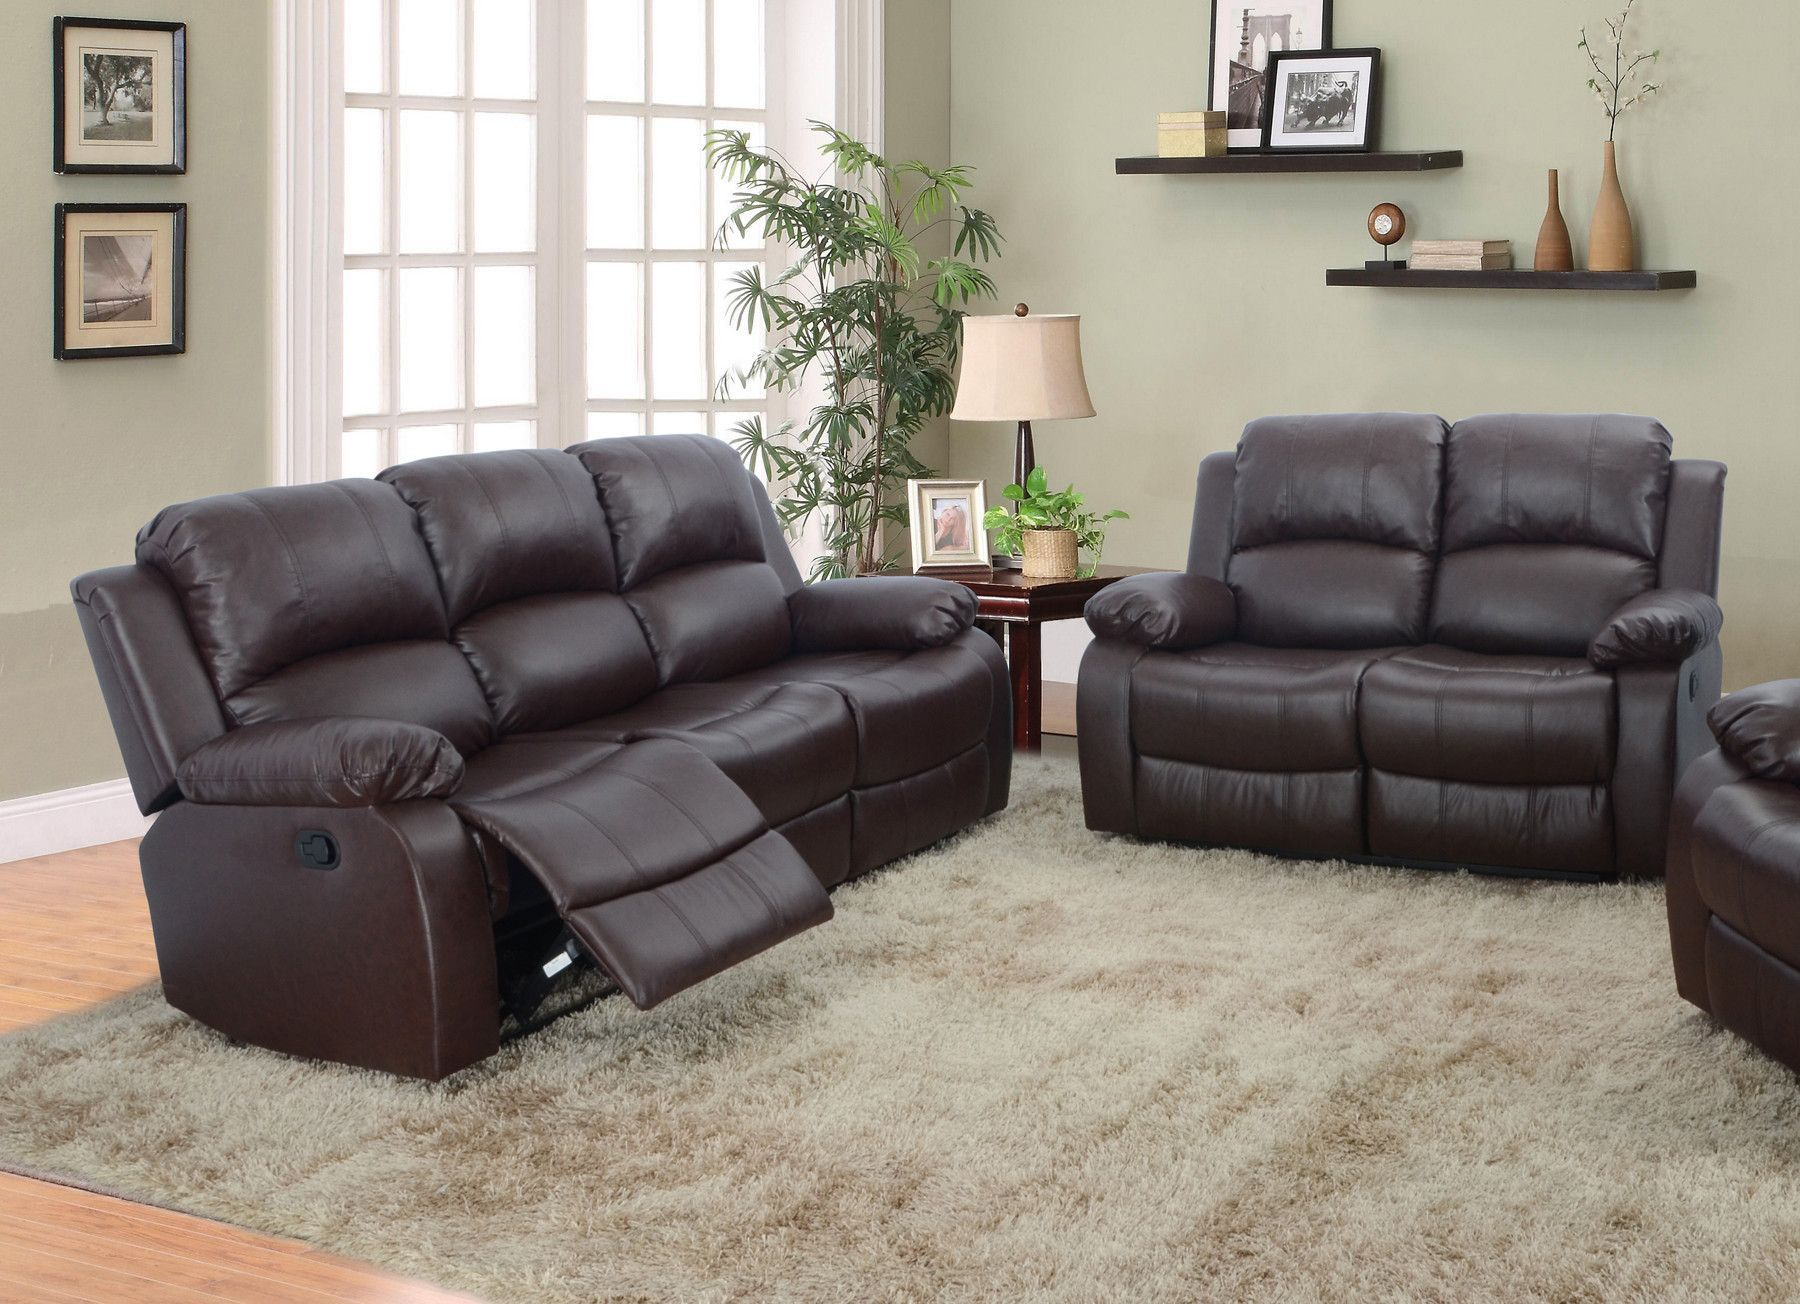 Denver 2 Piece Bonded Leather Reclining Living Room Sofa Set